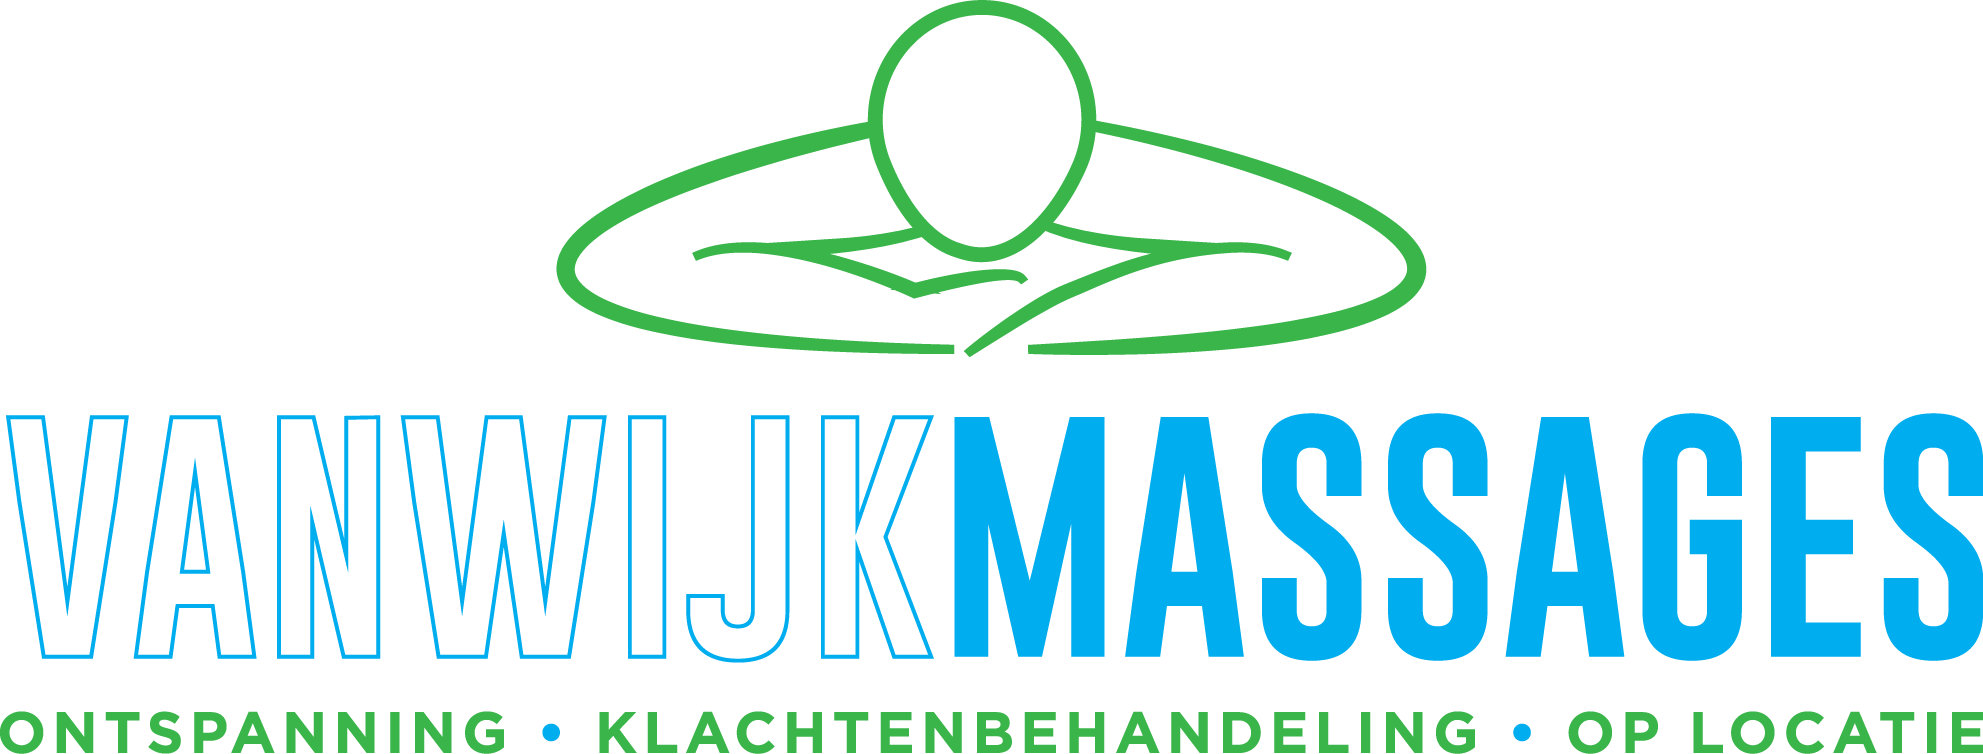 Van Wijk Massages